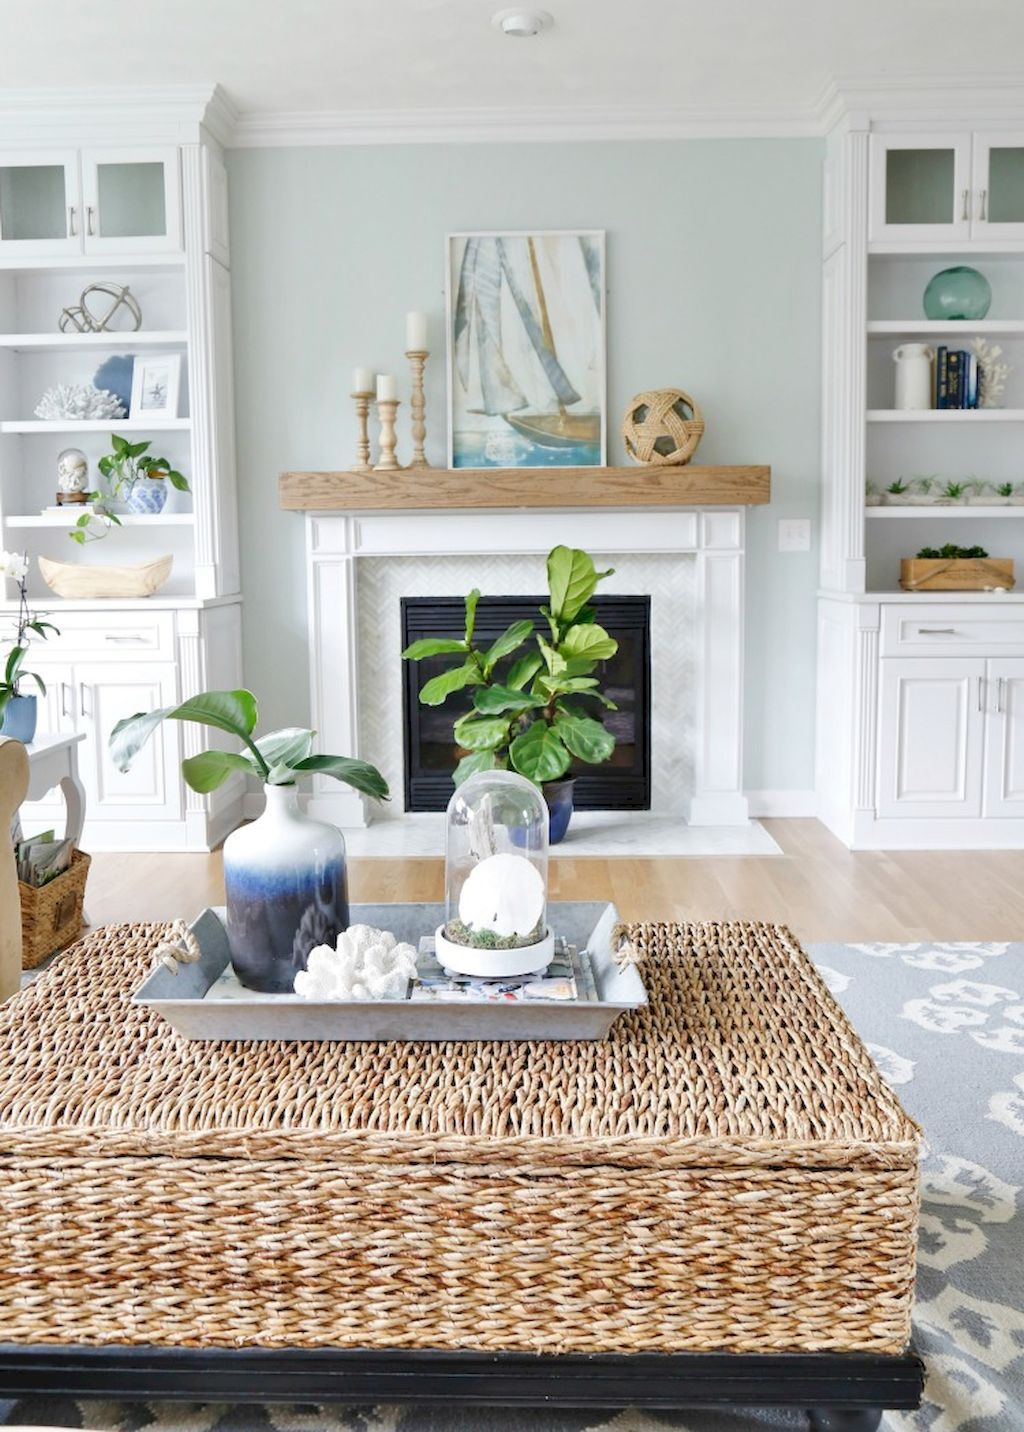 85 Cozy Coastal Living Room Decorating Ideas | Coastal, Beach and ...